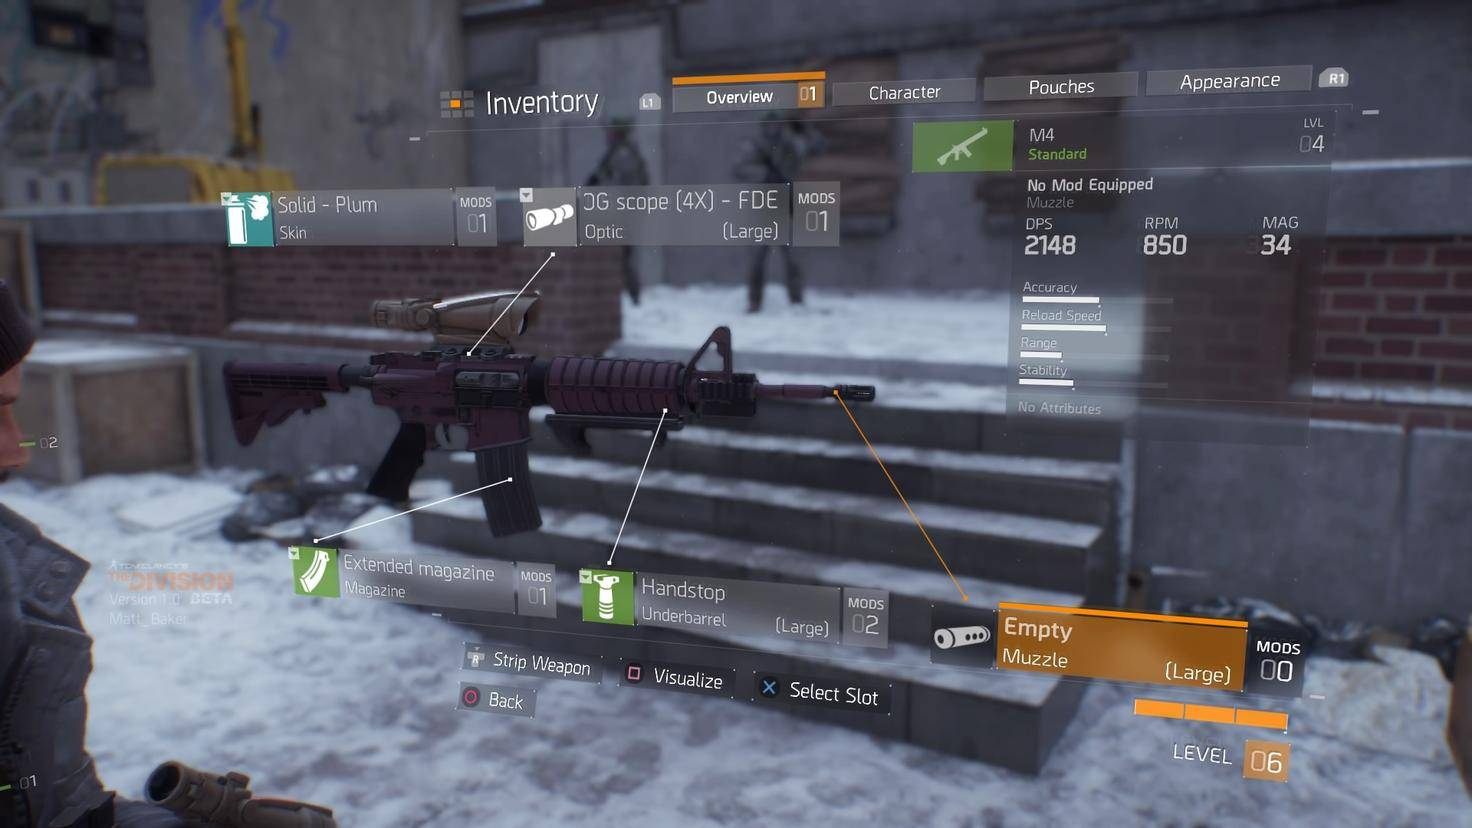 Tom Clancy's The Division Beta